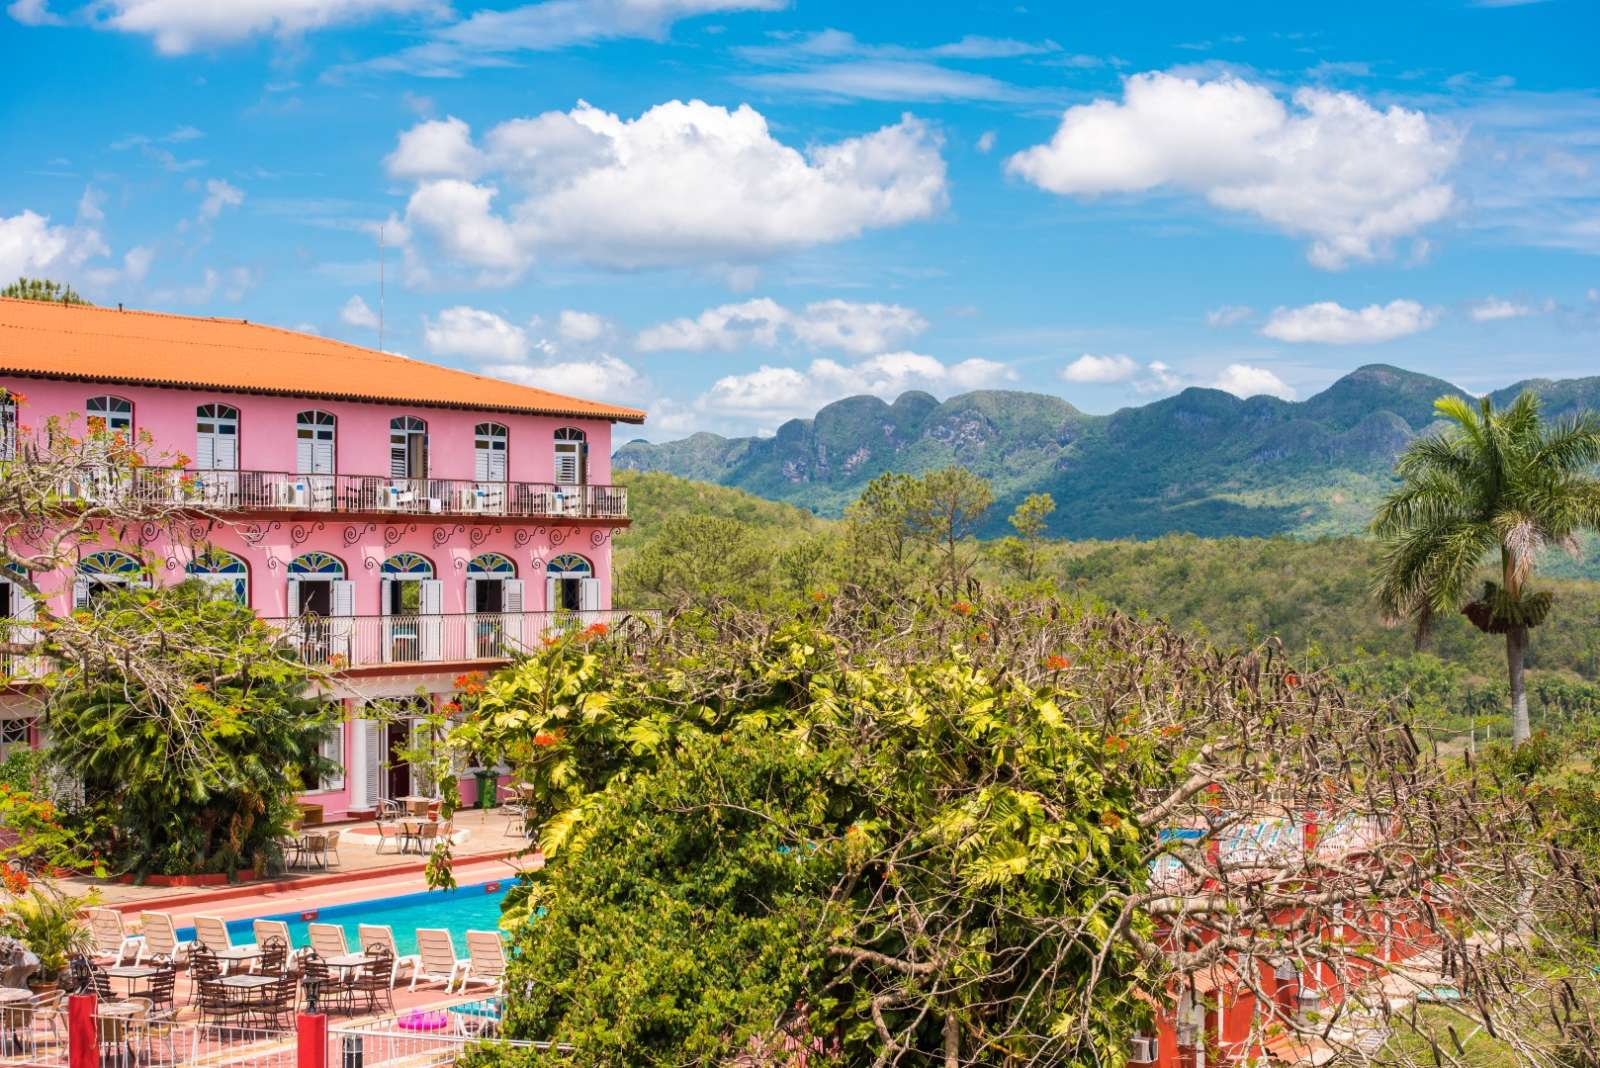 Main building and pool at Hotel Los Jazmines in Vinales, Cuba